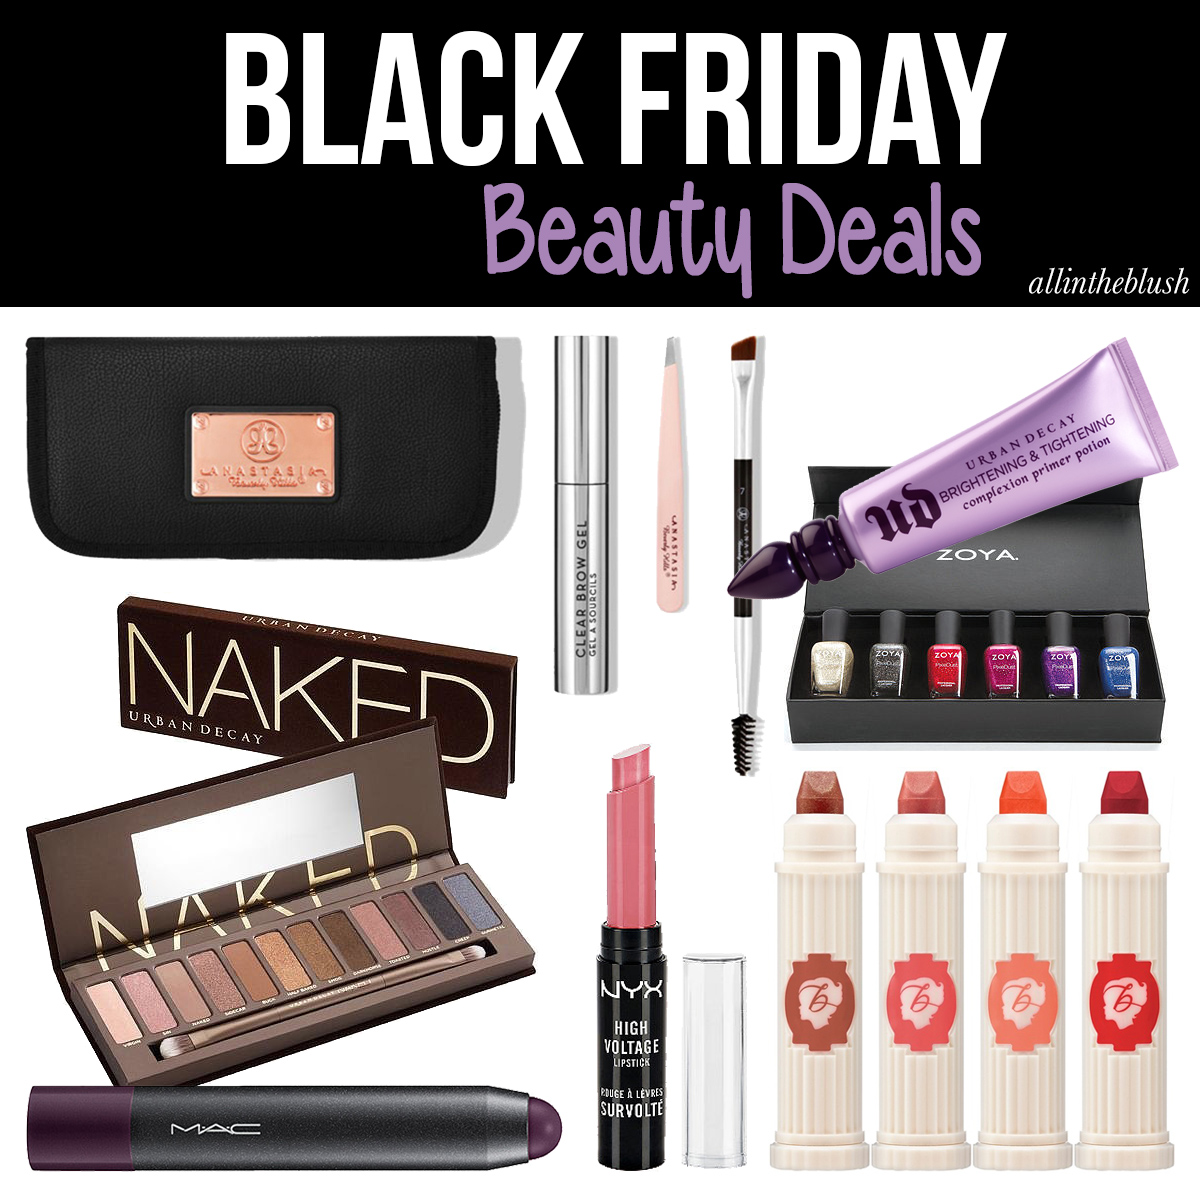 7074880fe0 Find the best 2017 ULTA Beauty Black Friday deals and sales.Complete  listings of Black Friday Makeup Deals 2017